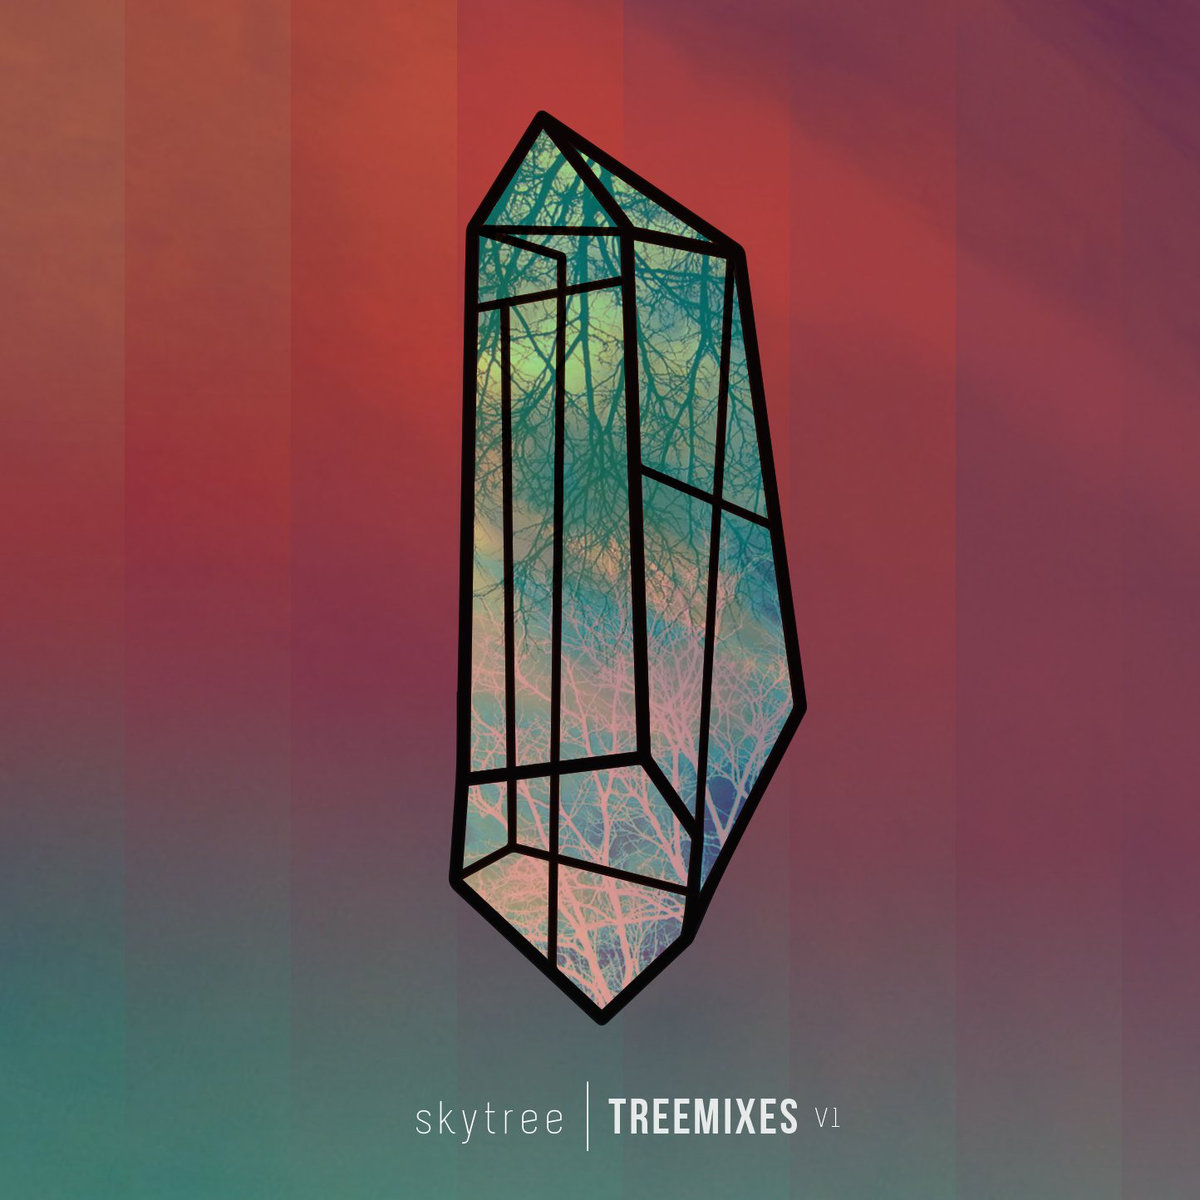 Skytree - Keep It Sacred, Keep It Safe (Heiss remix).flac @ 'Treemixes V1' album (Austin)